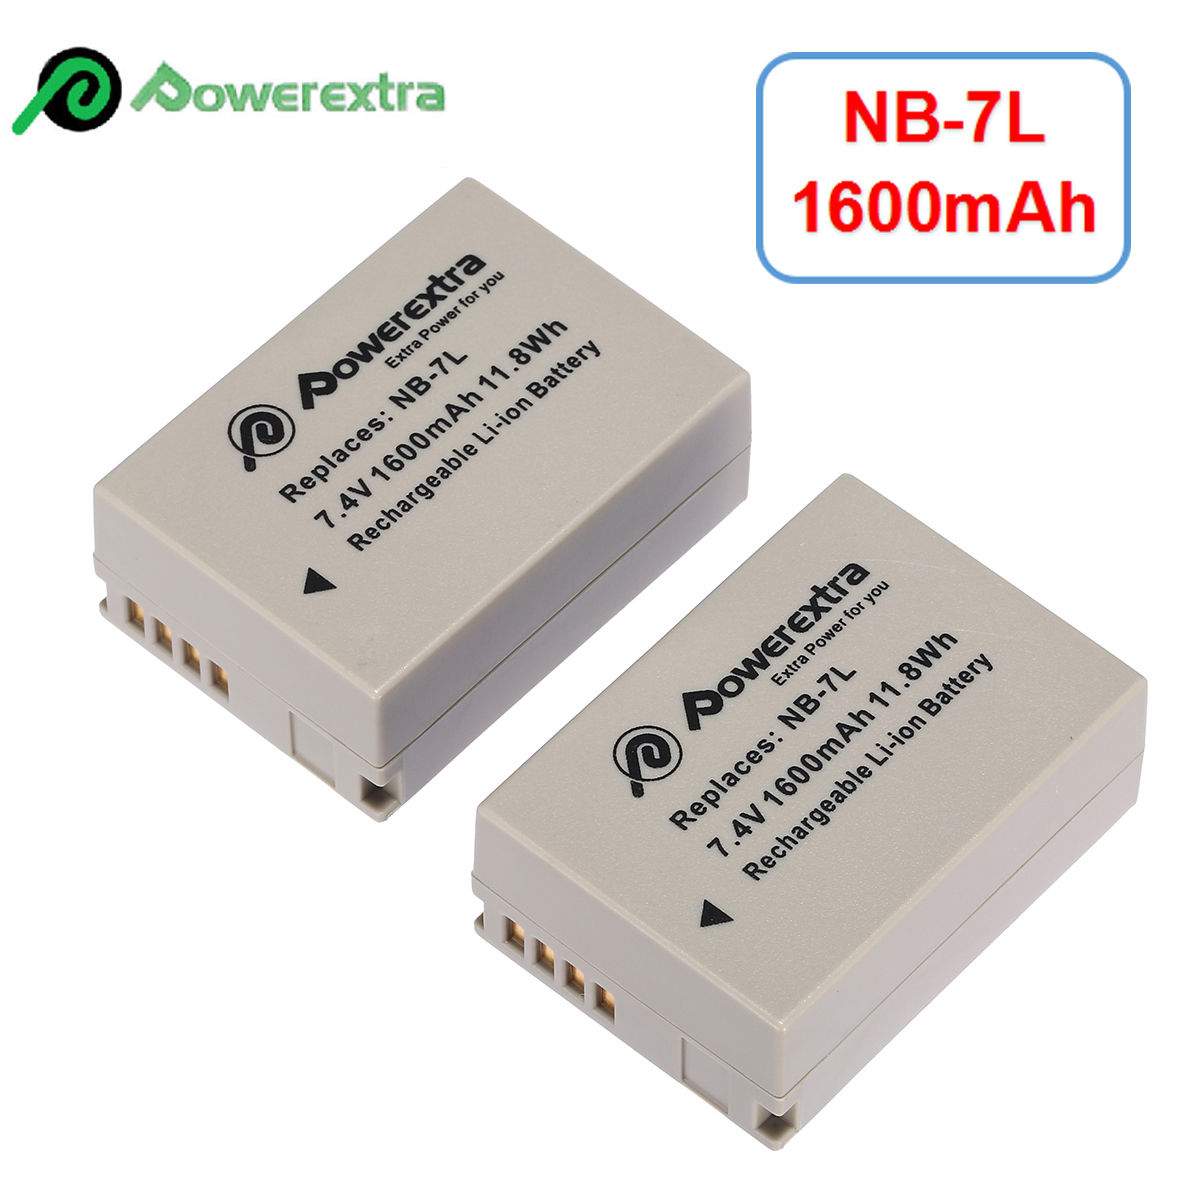 G11 Cameras SX 30 IS G10 NB-7L 1600mAh Battery for Canon Powershot ...